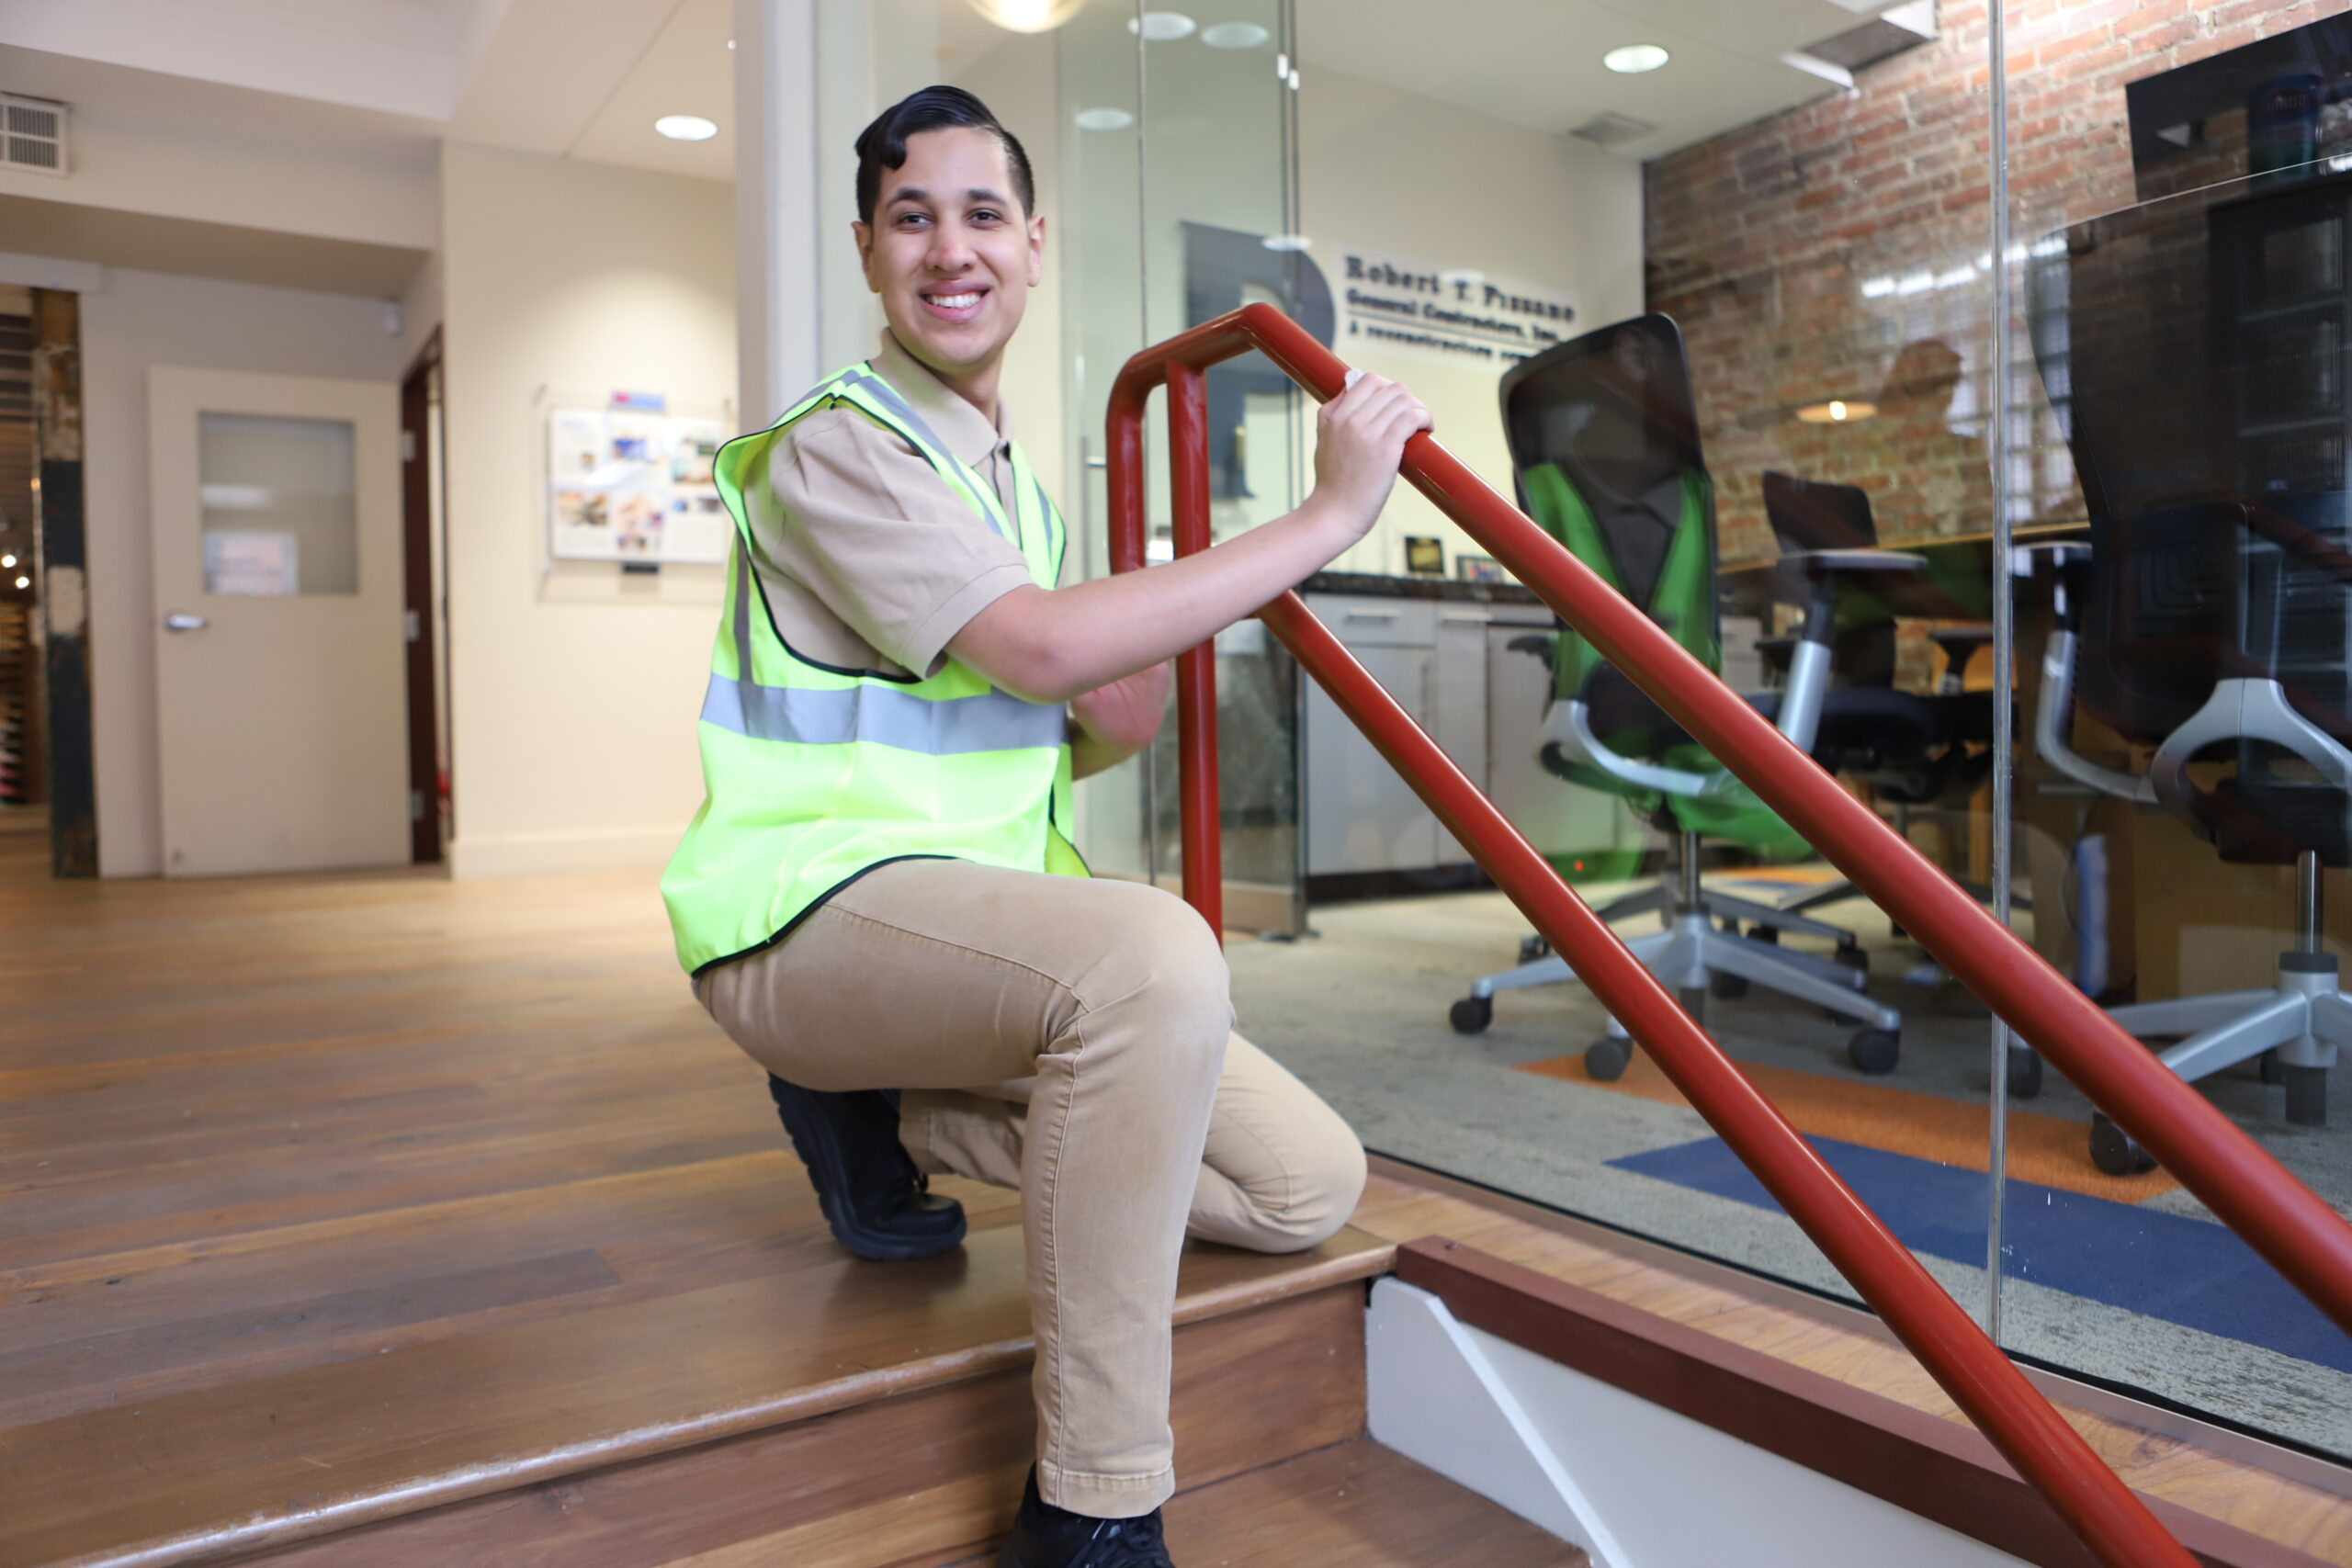 person smiling at camera with hands on stair rail